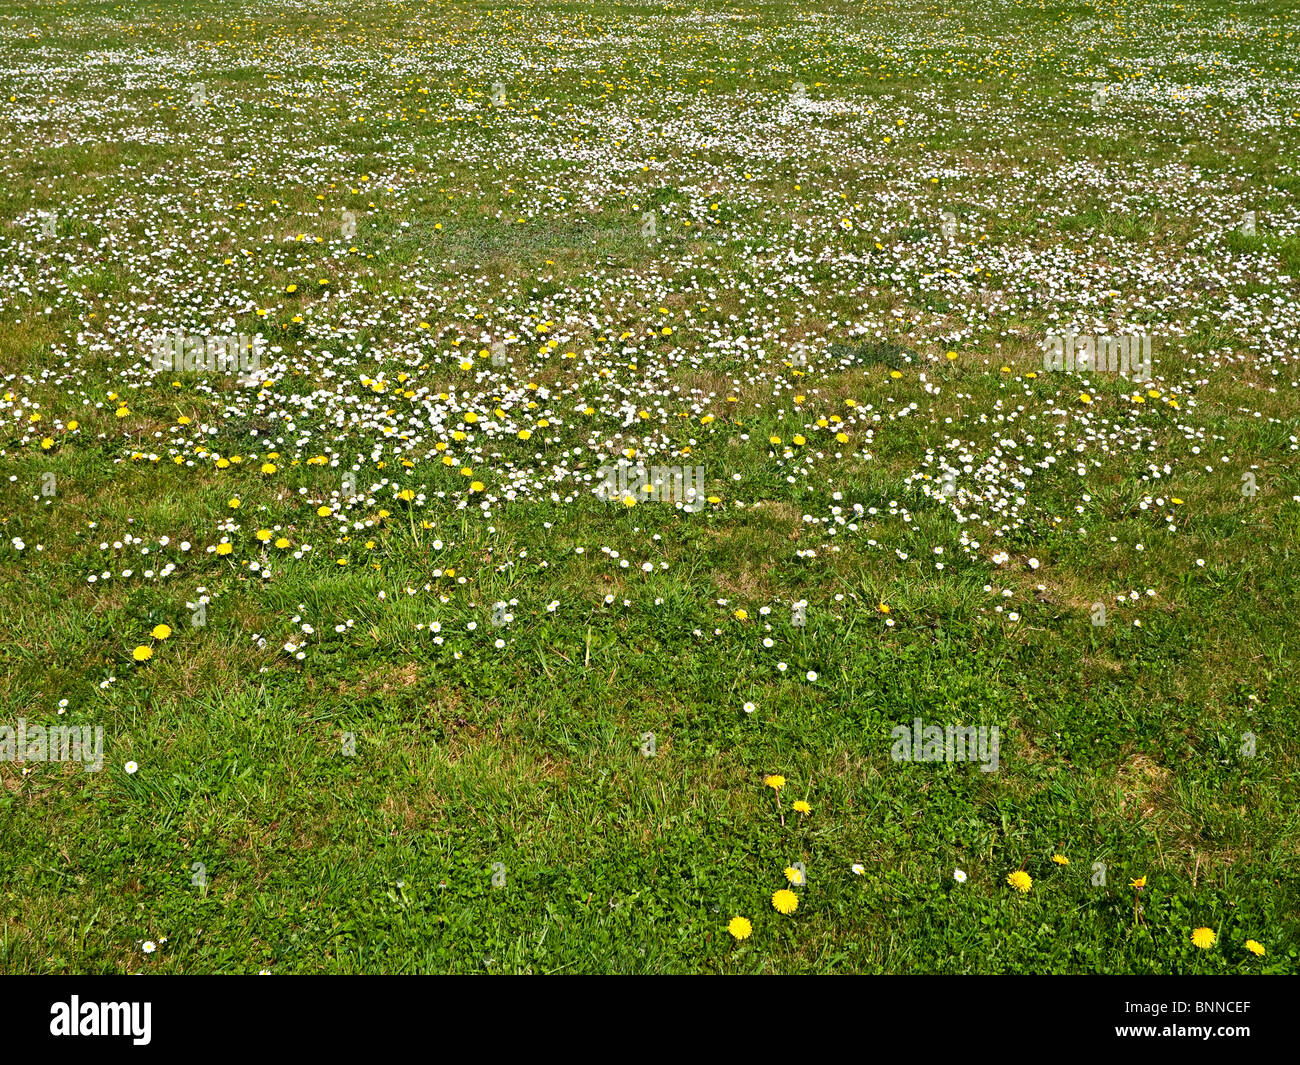 Daisies, Dandelions and weeds growing out of control in garden lawn - France. - Stock Image